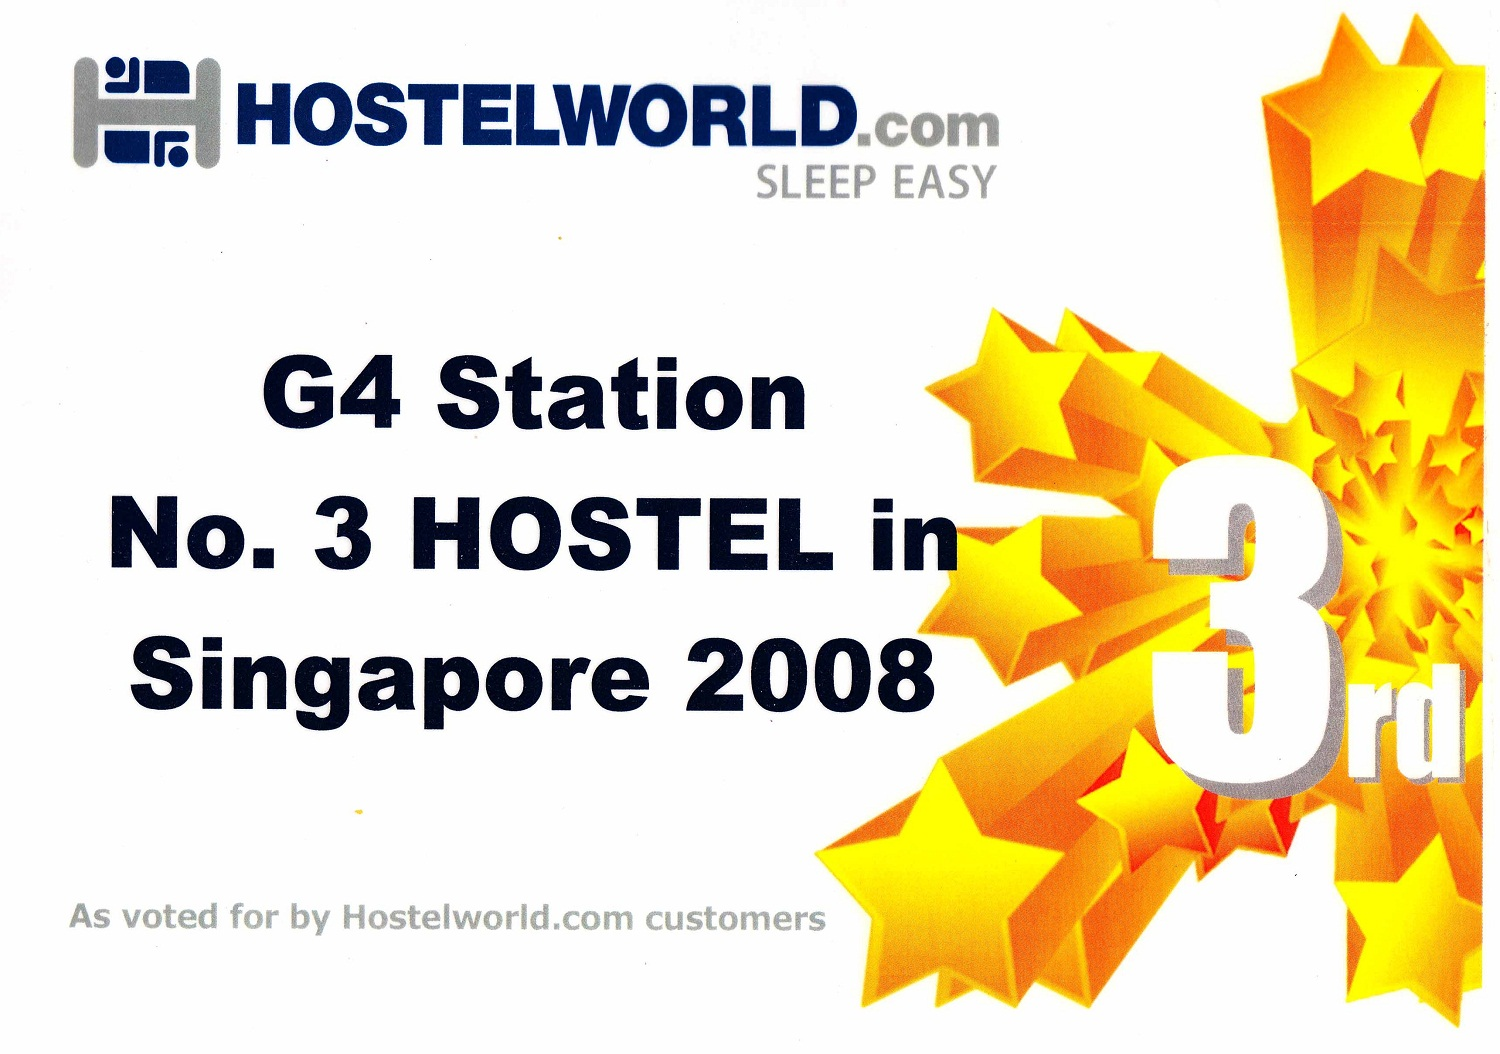 Accreditation from HostelWorld